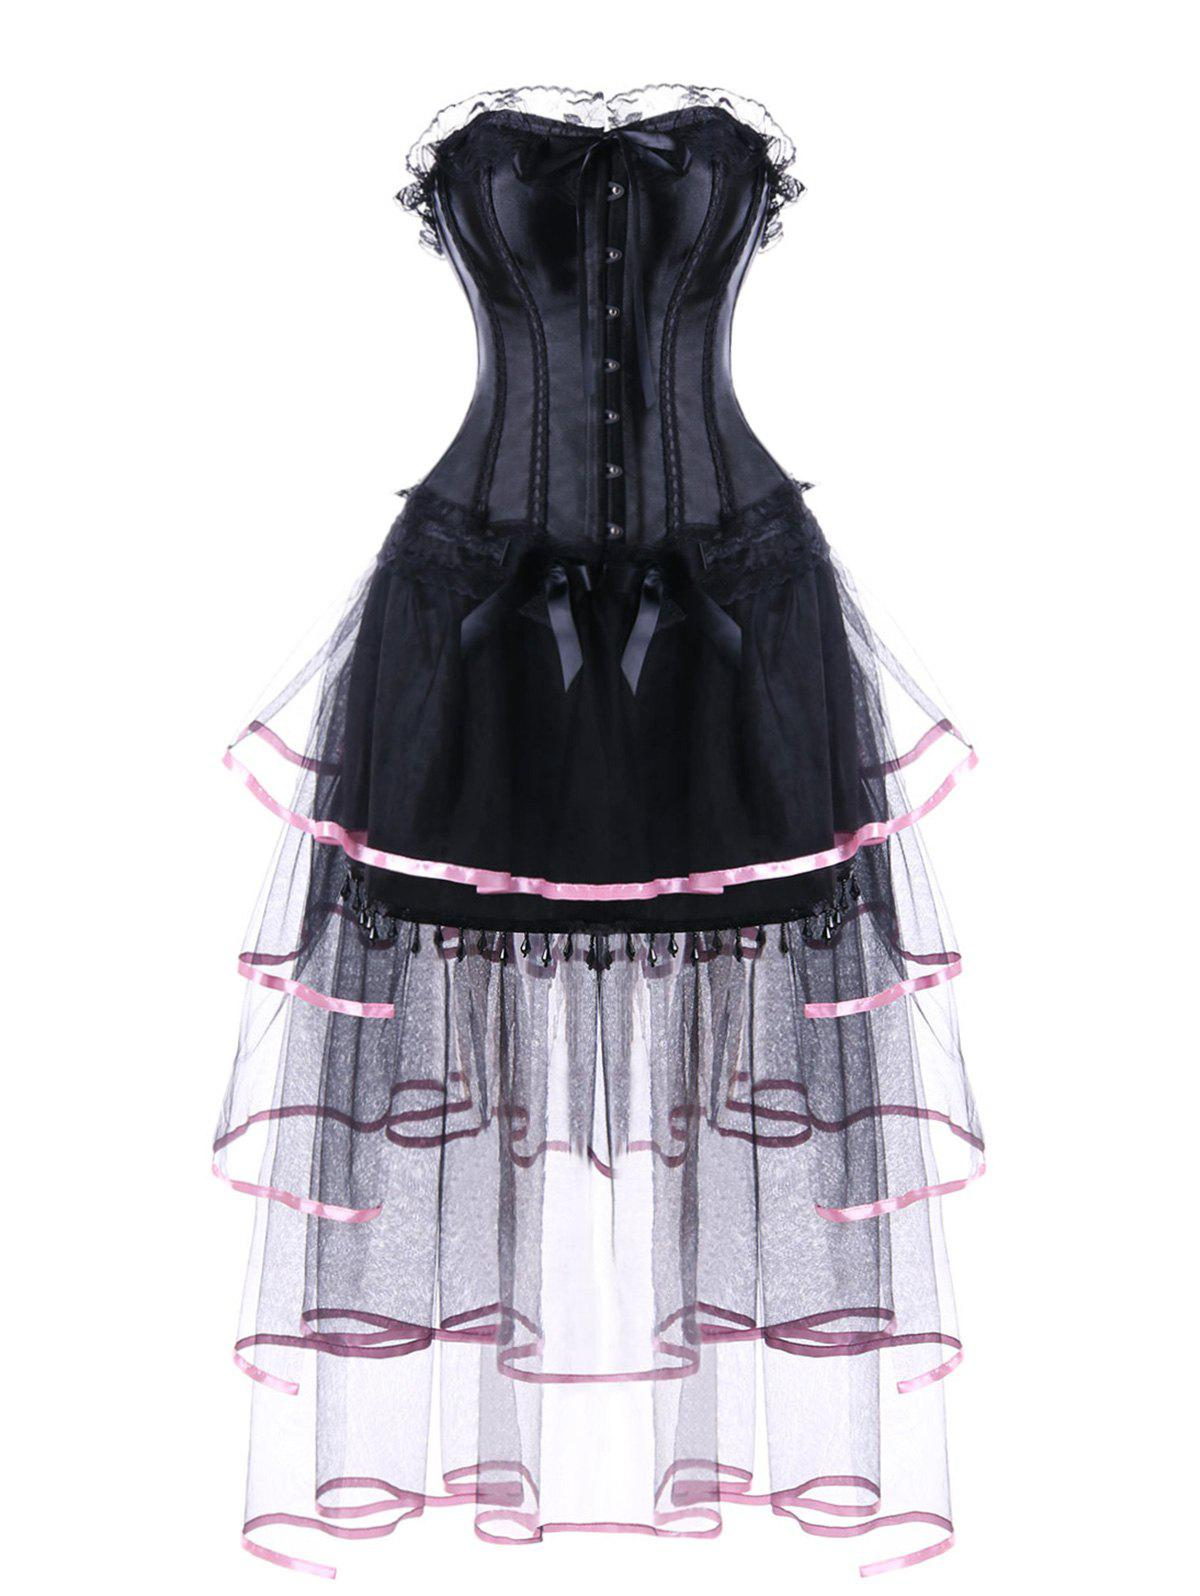 Sheer Mesh Insert Layered Strapless Corset Dress - BLACK M